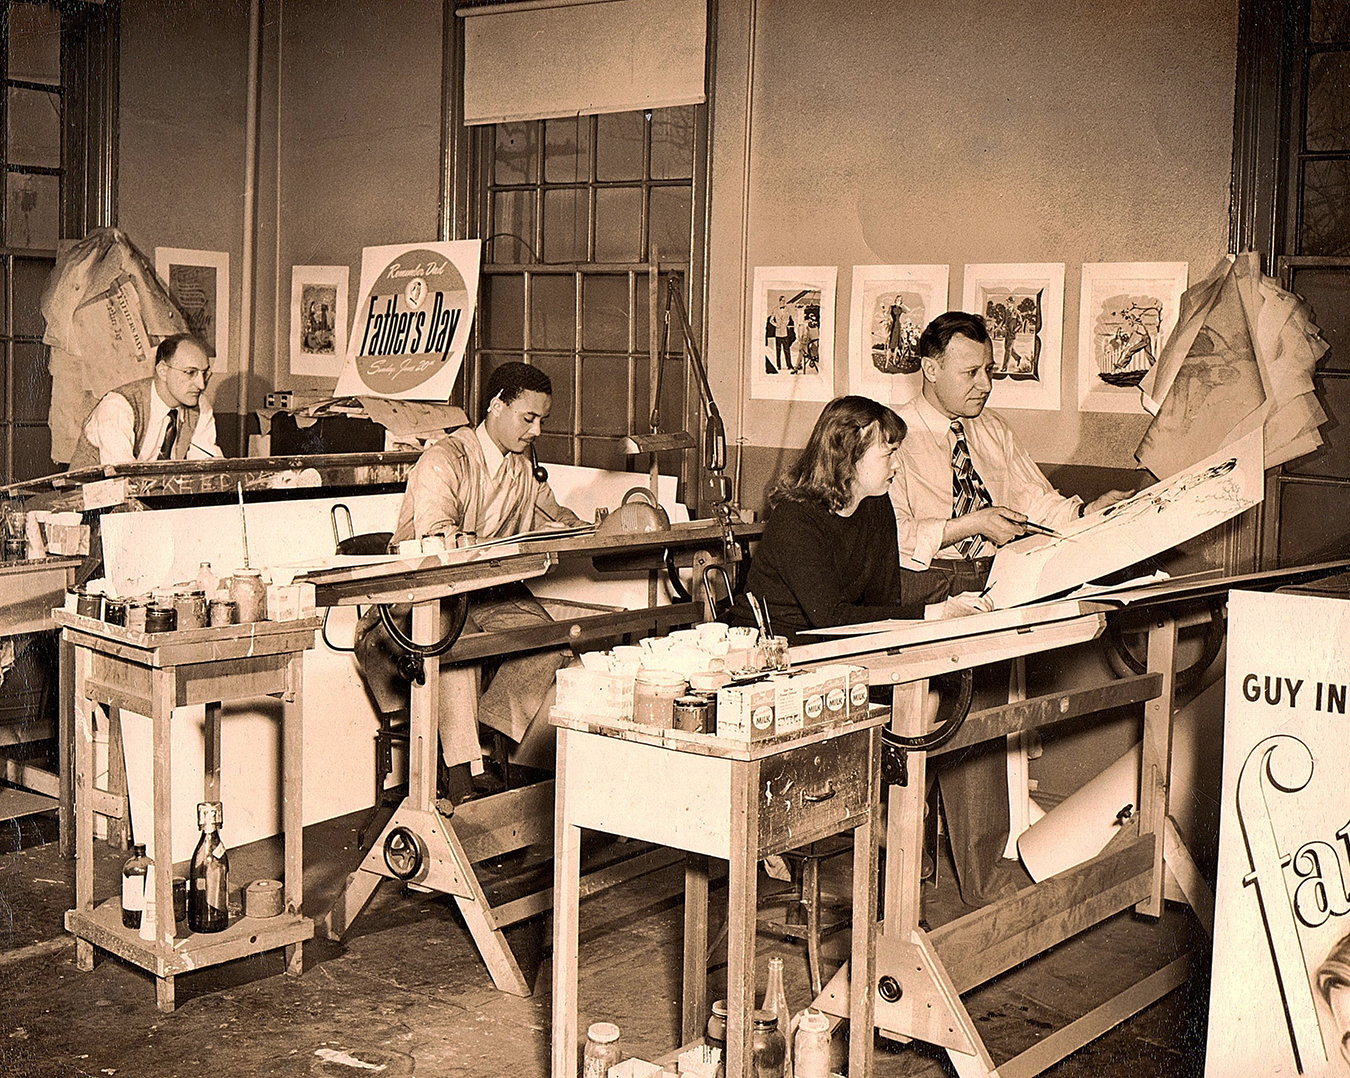 Tony_Ward_Studio_Milt_Ward_Family_Legacy_Project_men_at_work